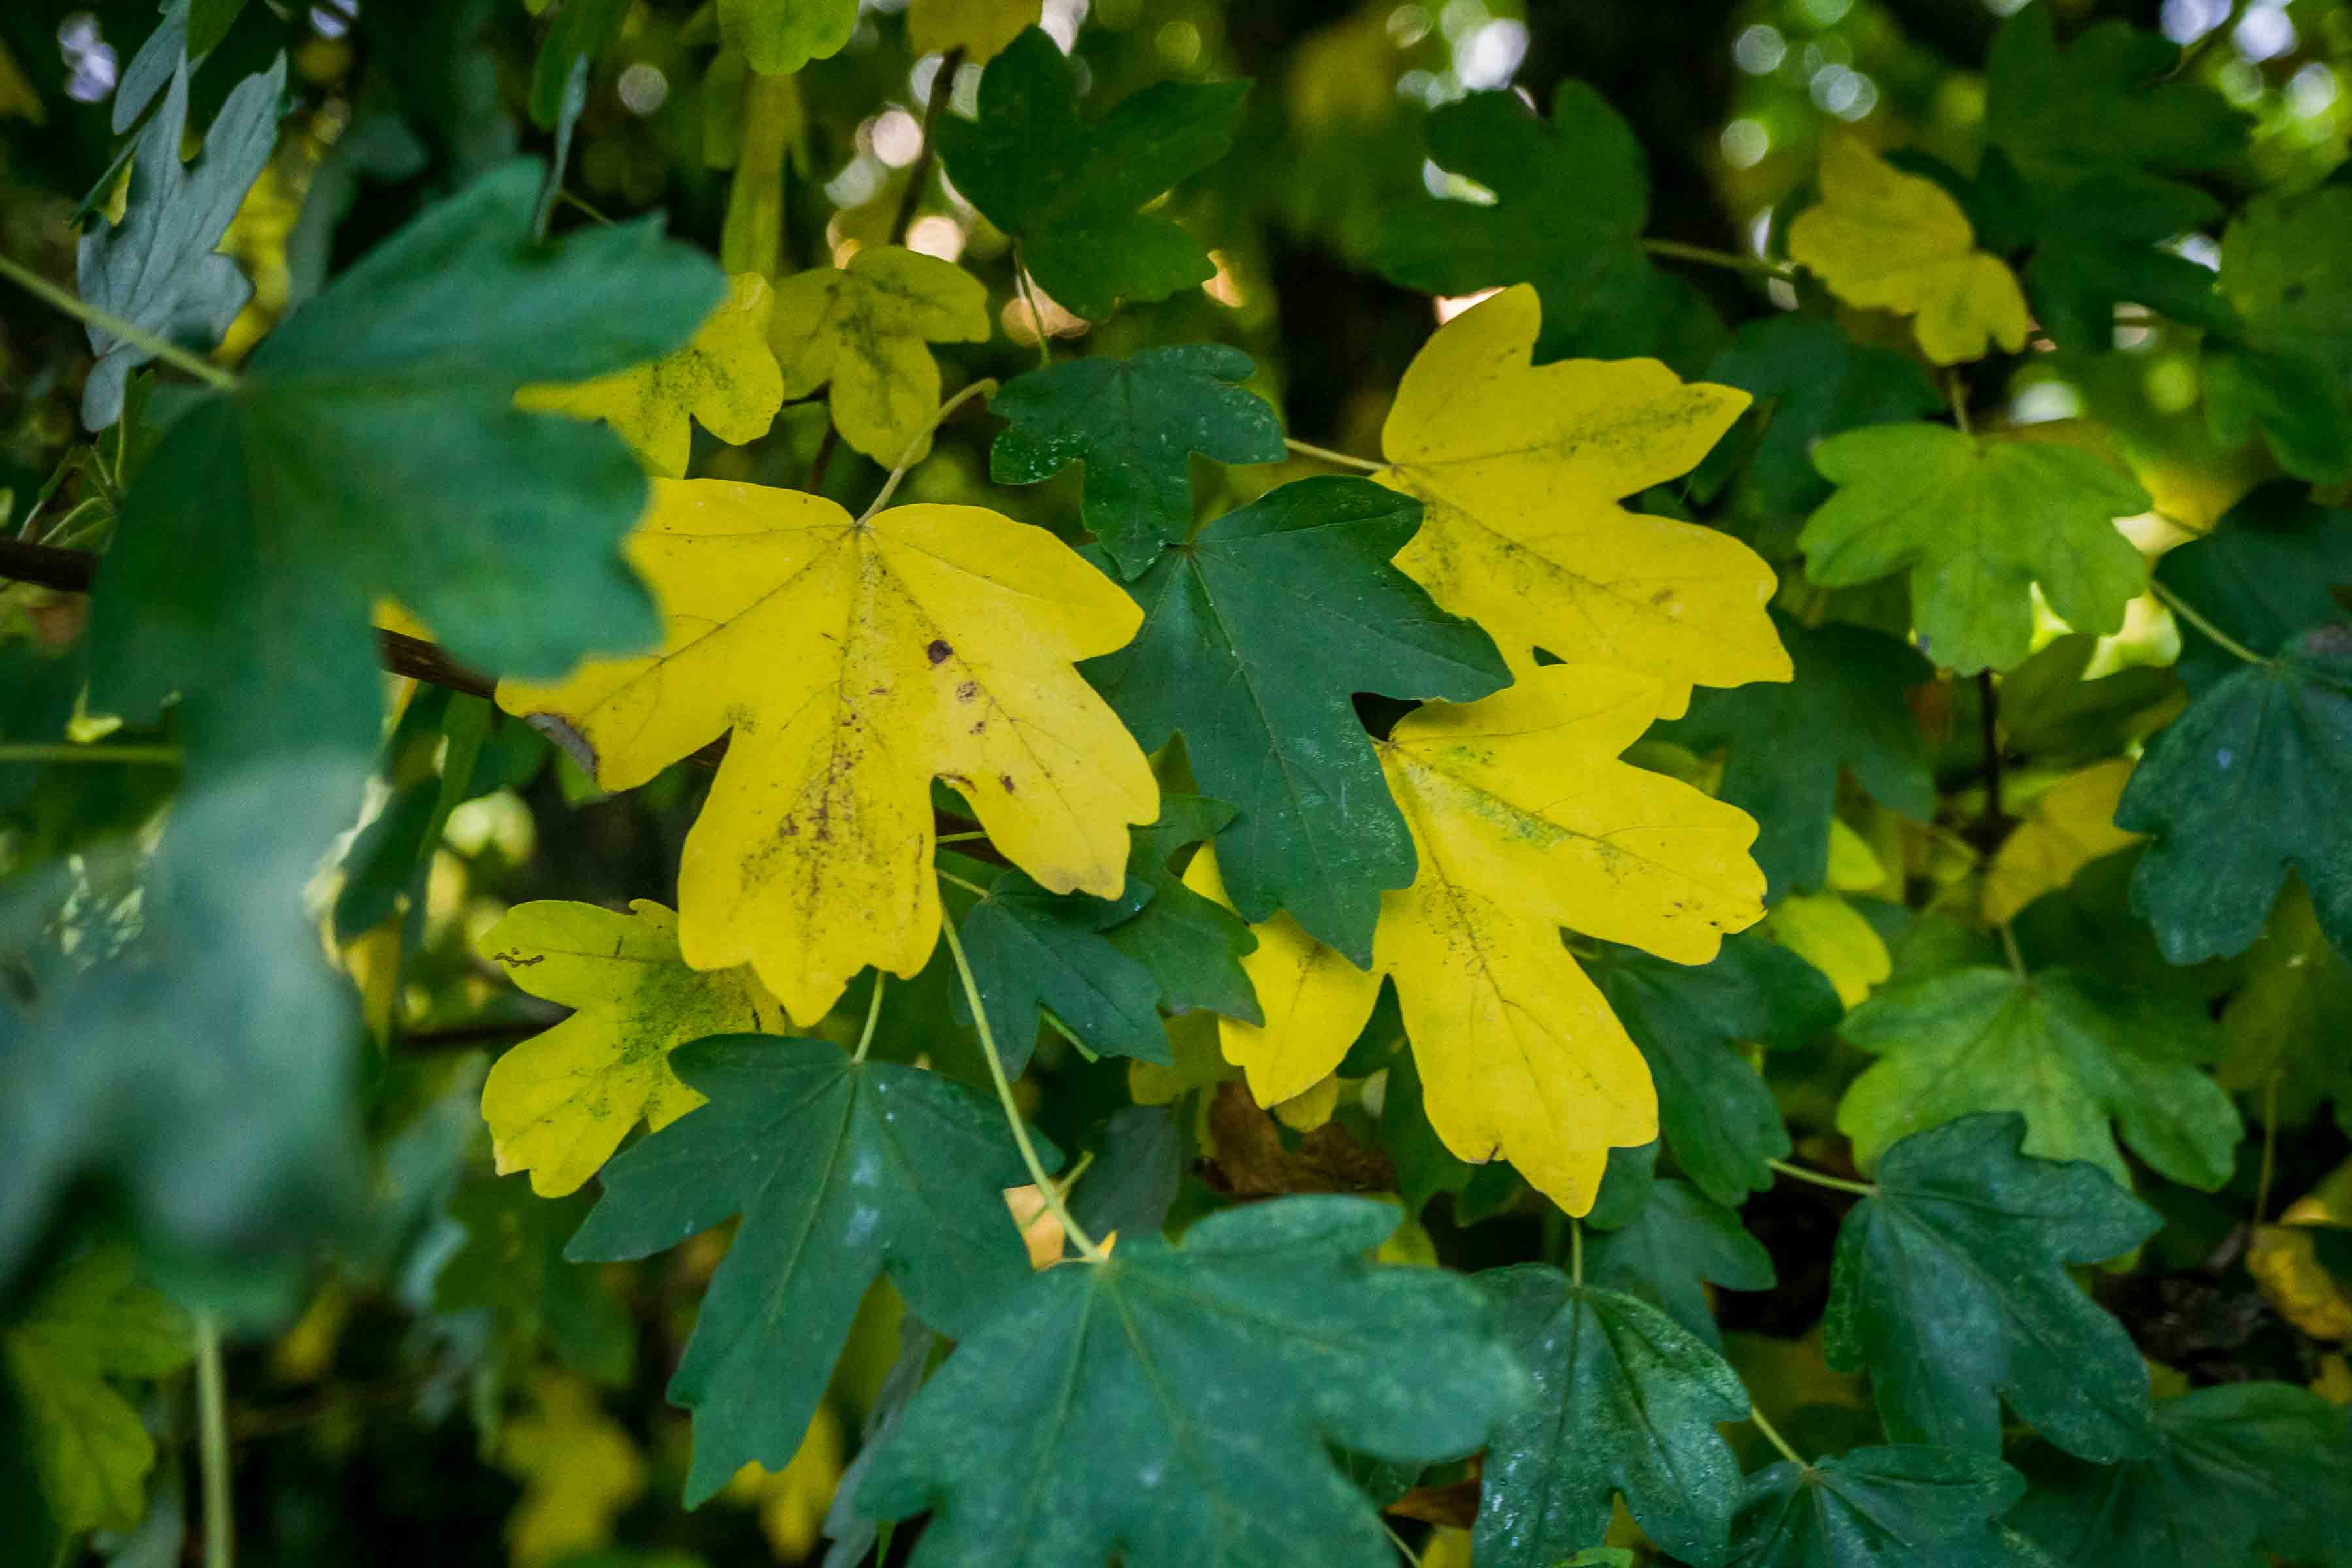 Field maple leaves turning from green to yellow